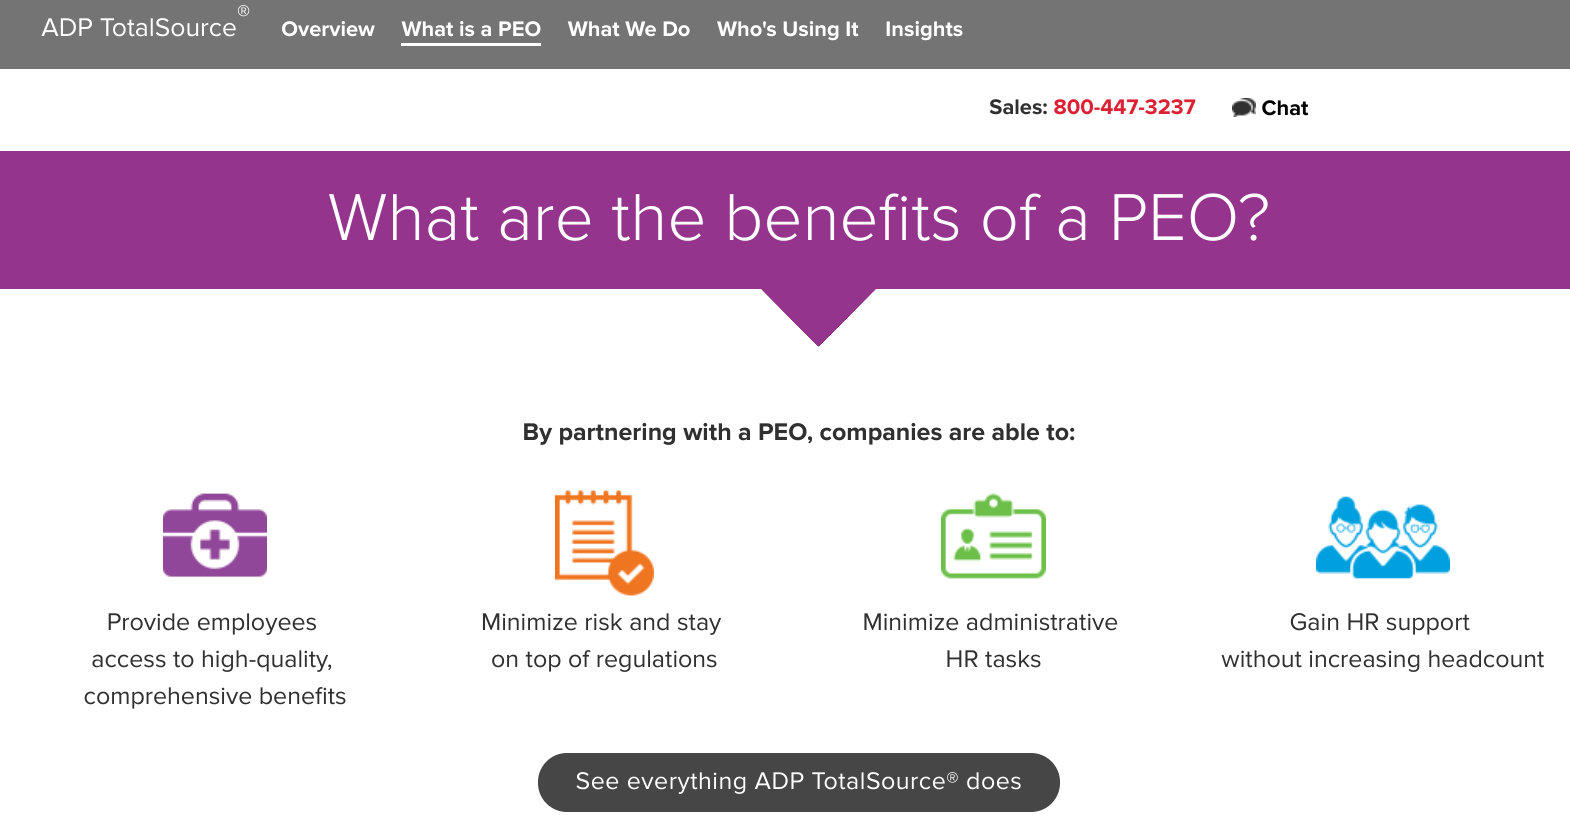 7 Best PEO Companies for Small Business